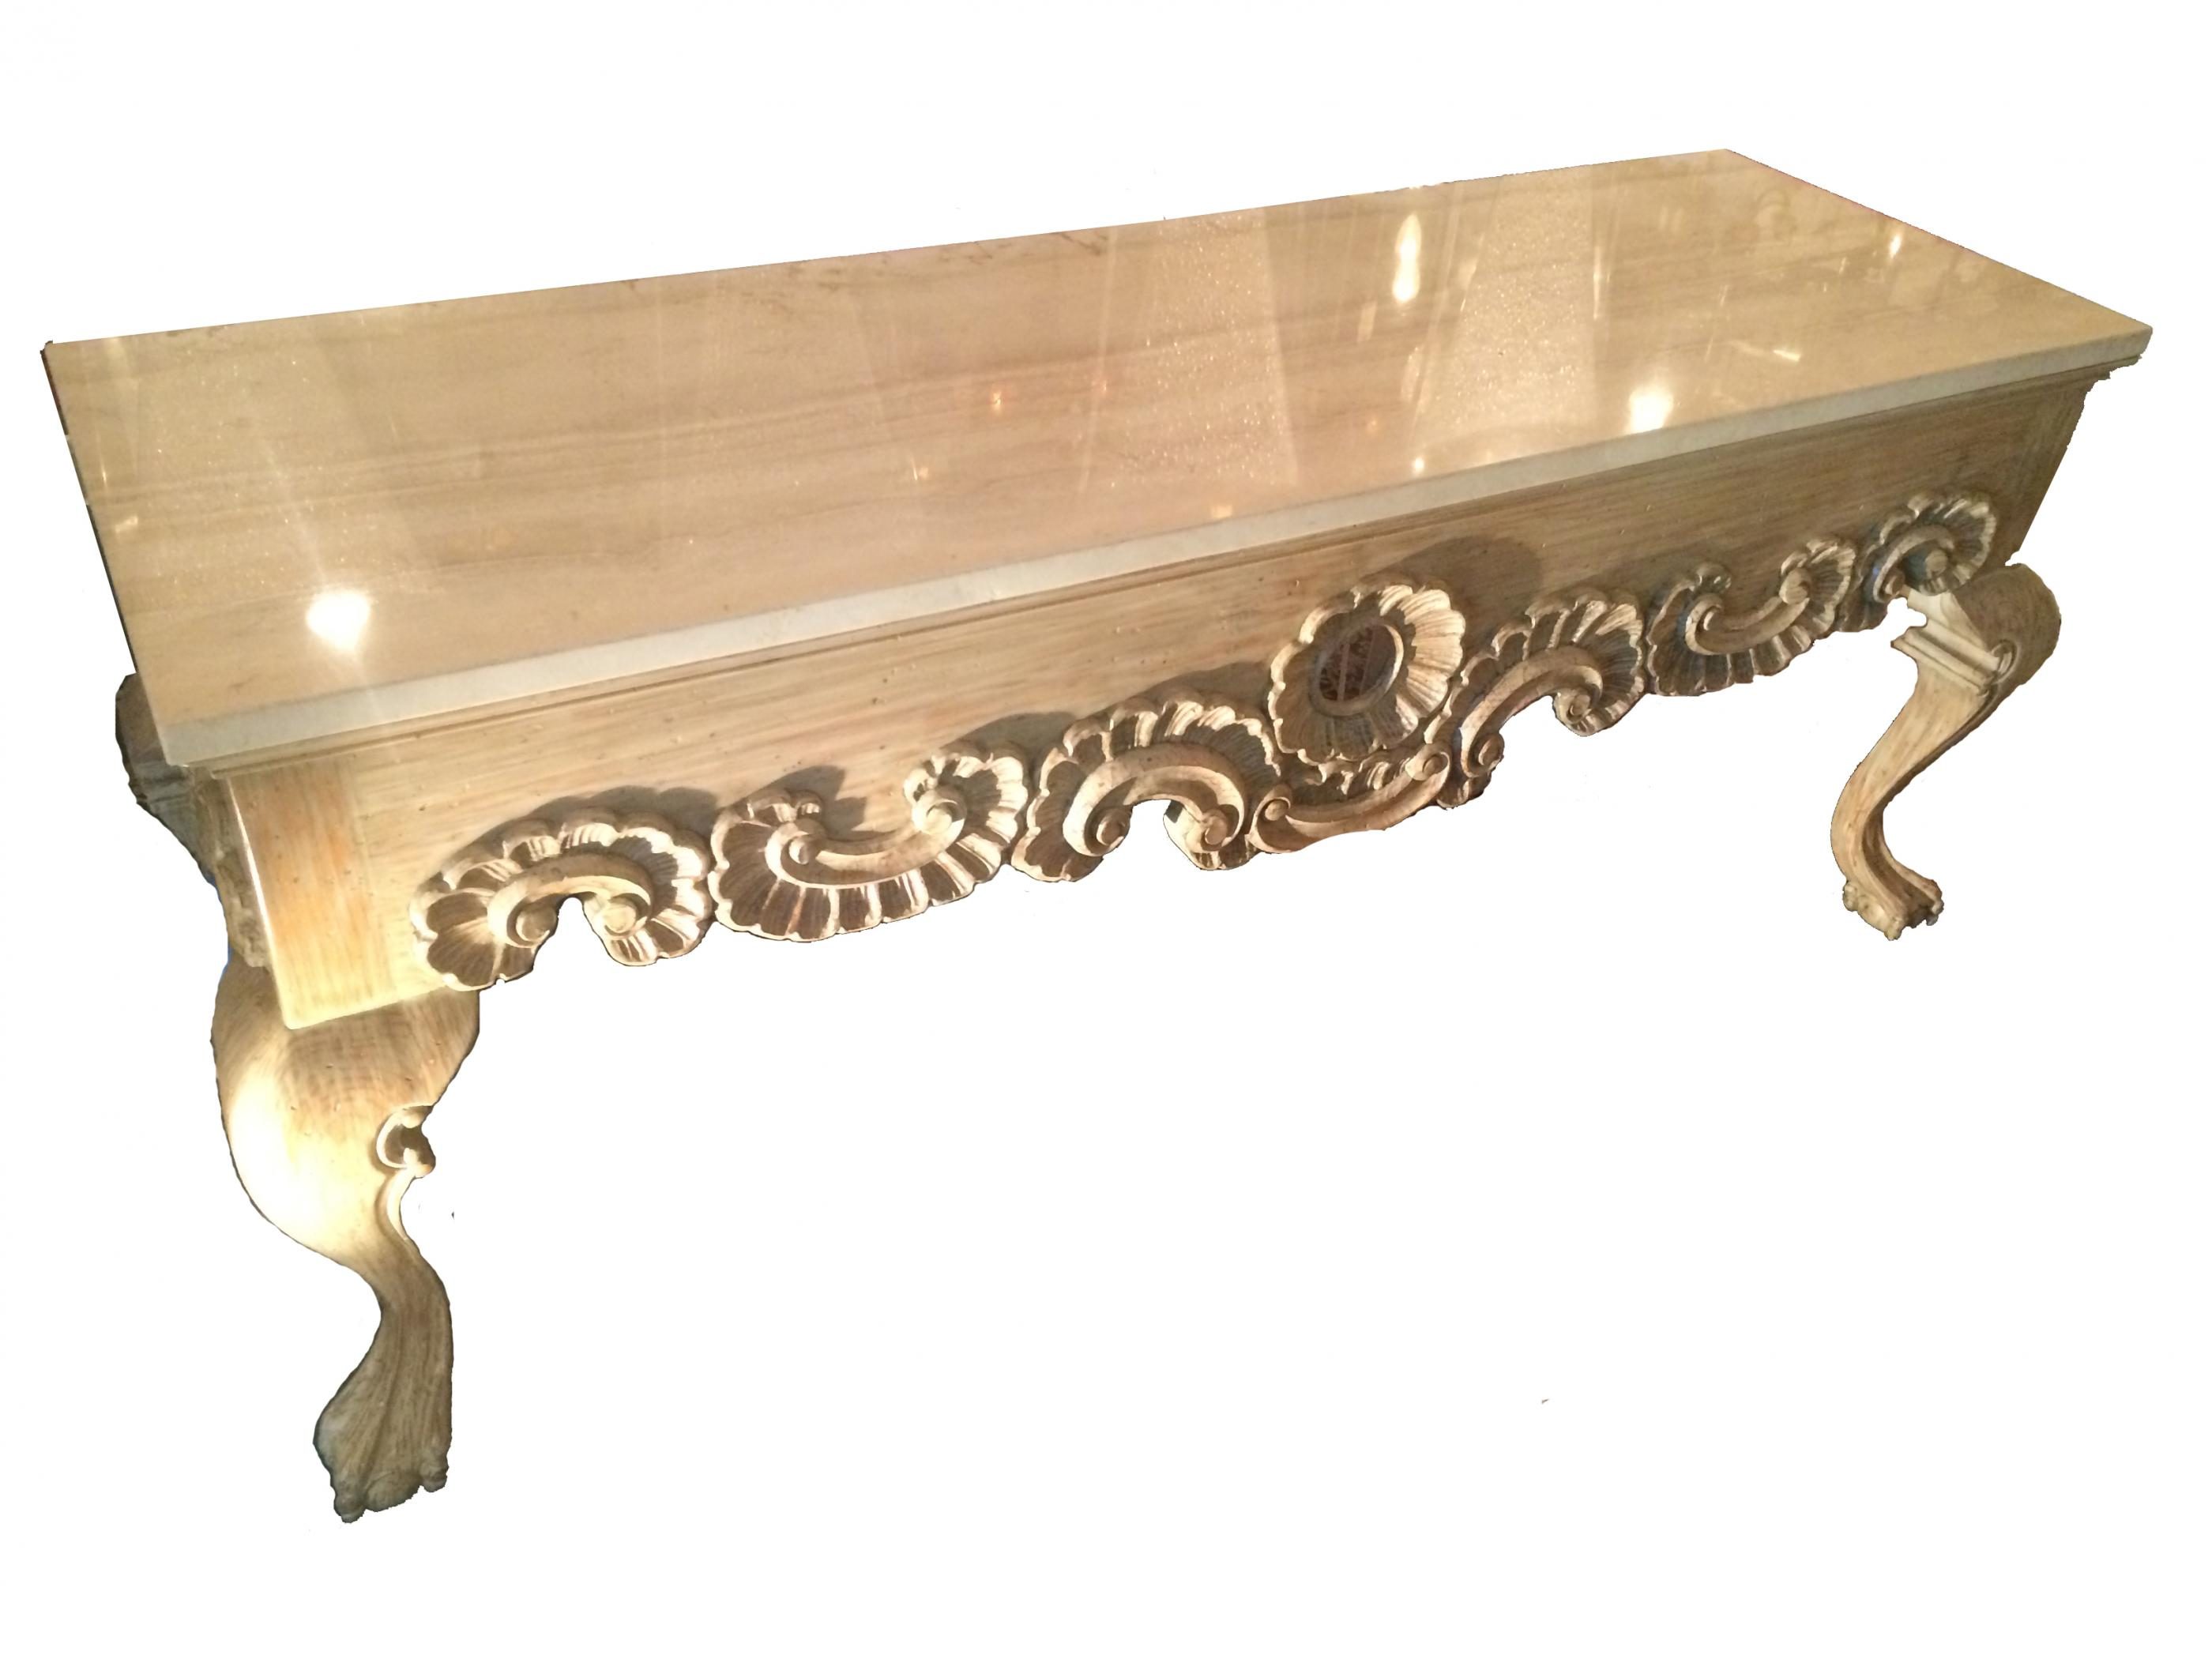 Ornate Marble Top Hall Console Table